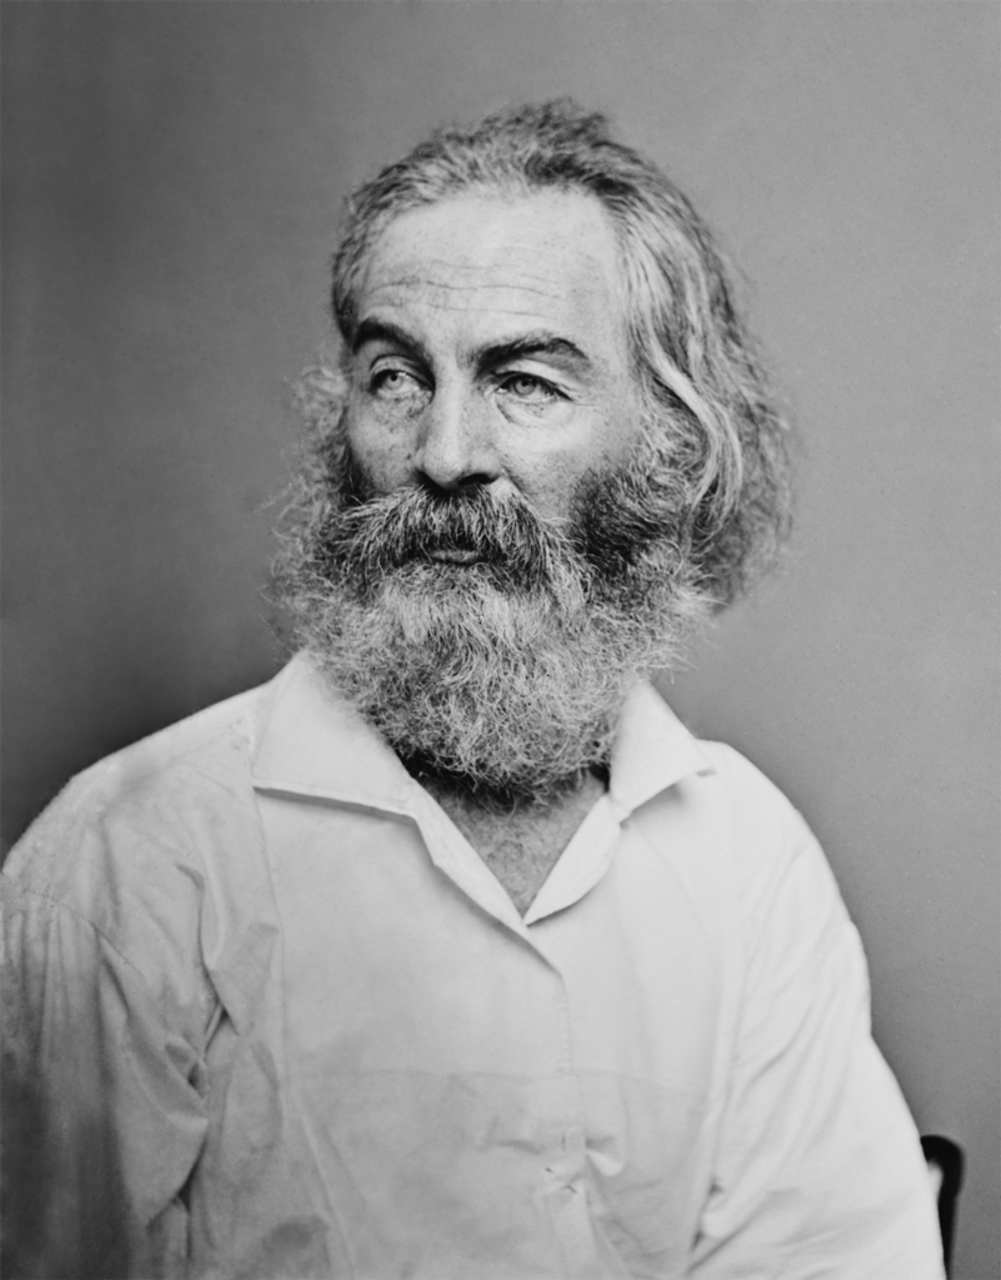 Walt Whitman photographed by Mathew Brady